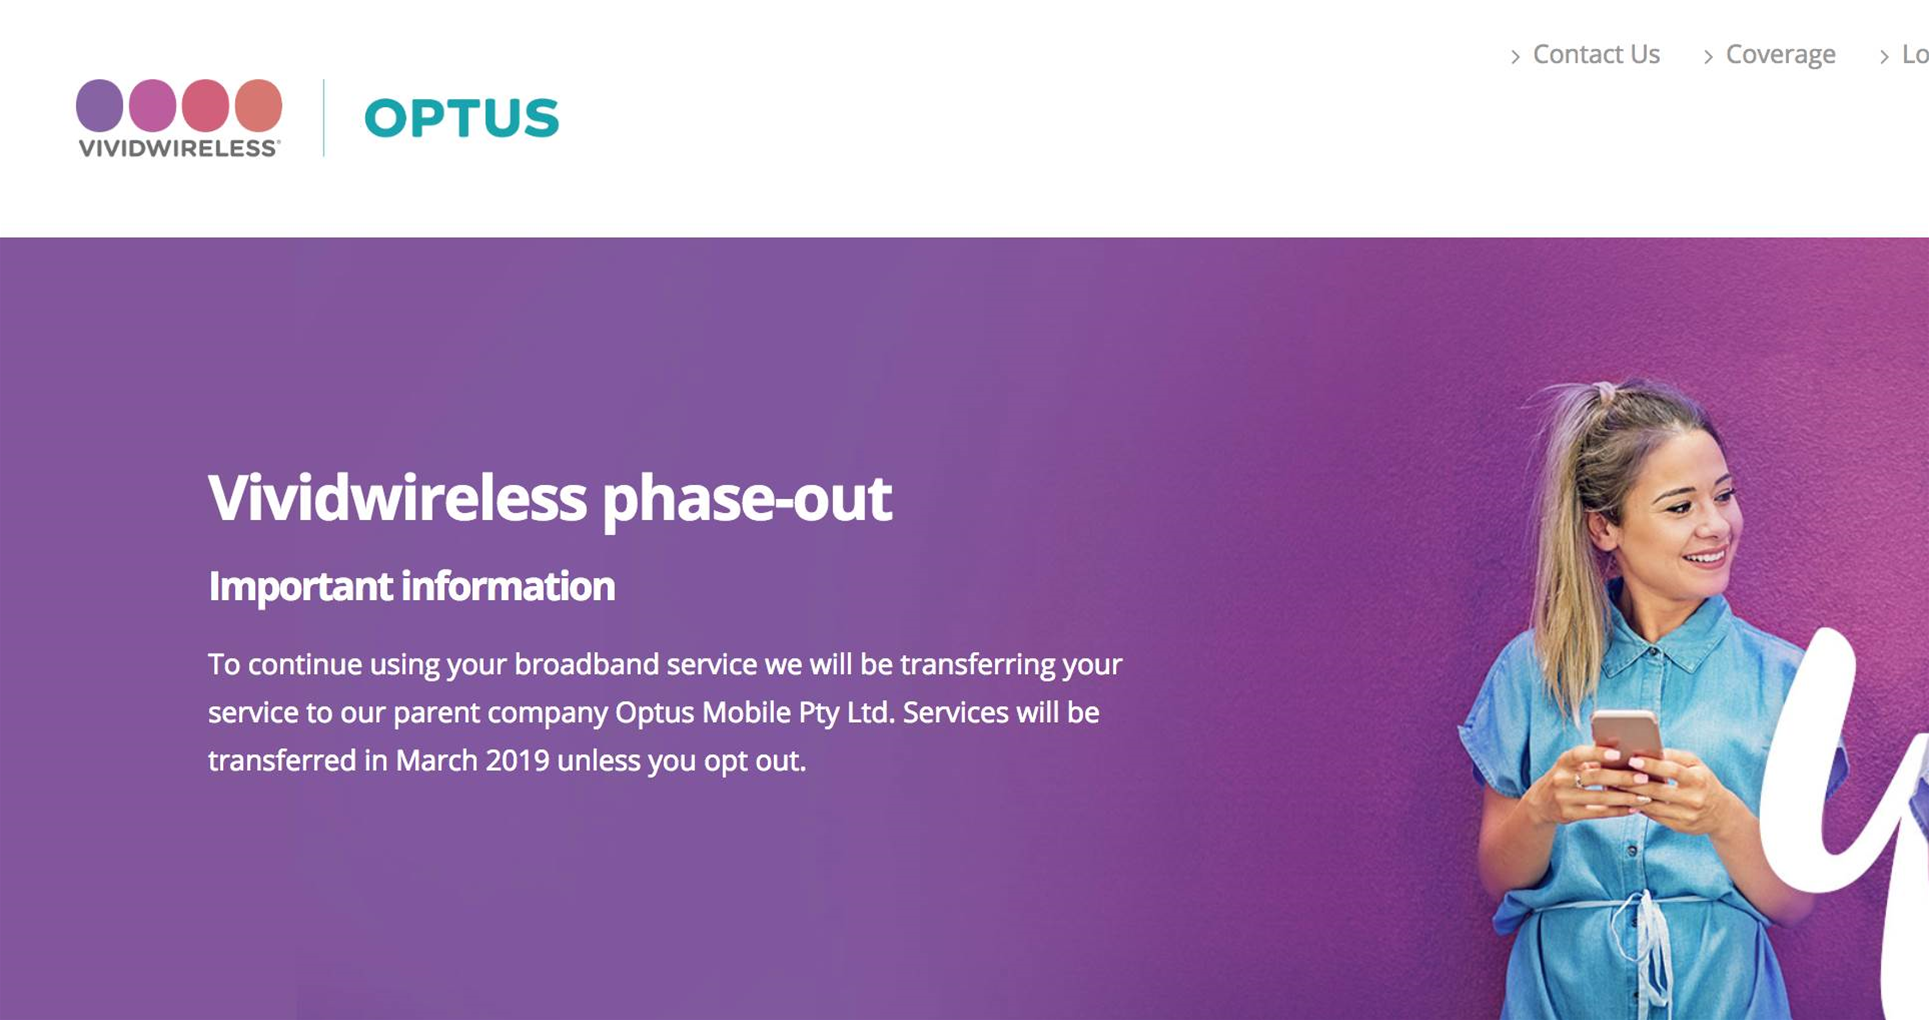 Optus to retire Vividwireless